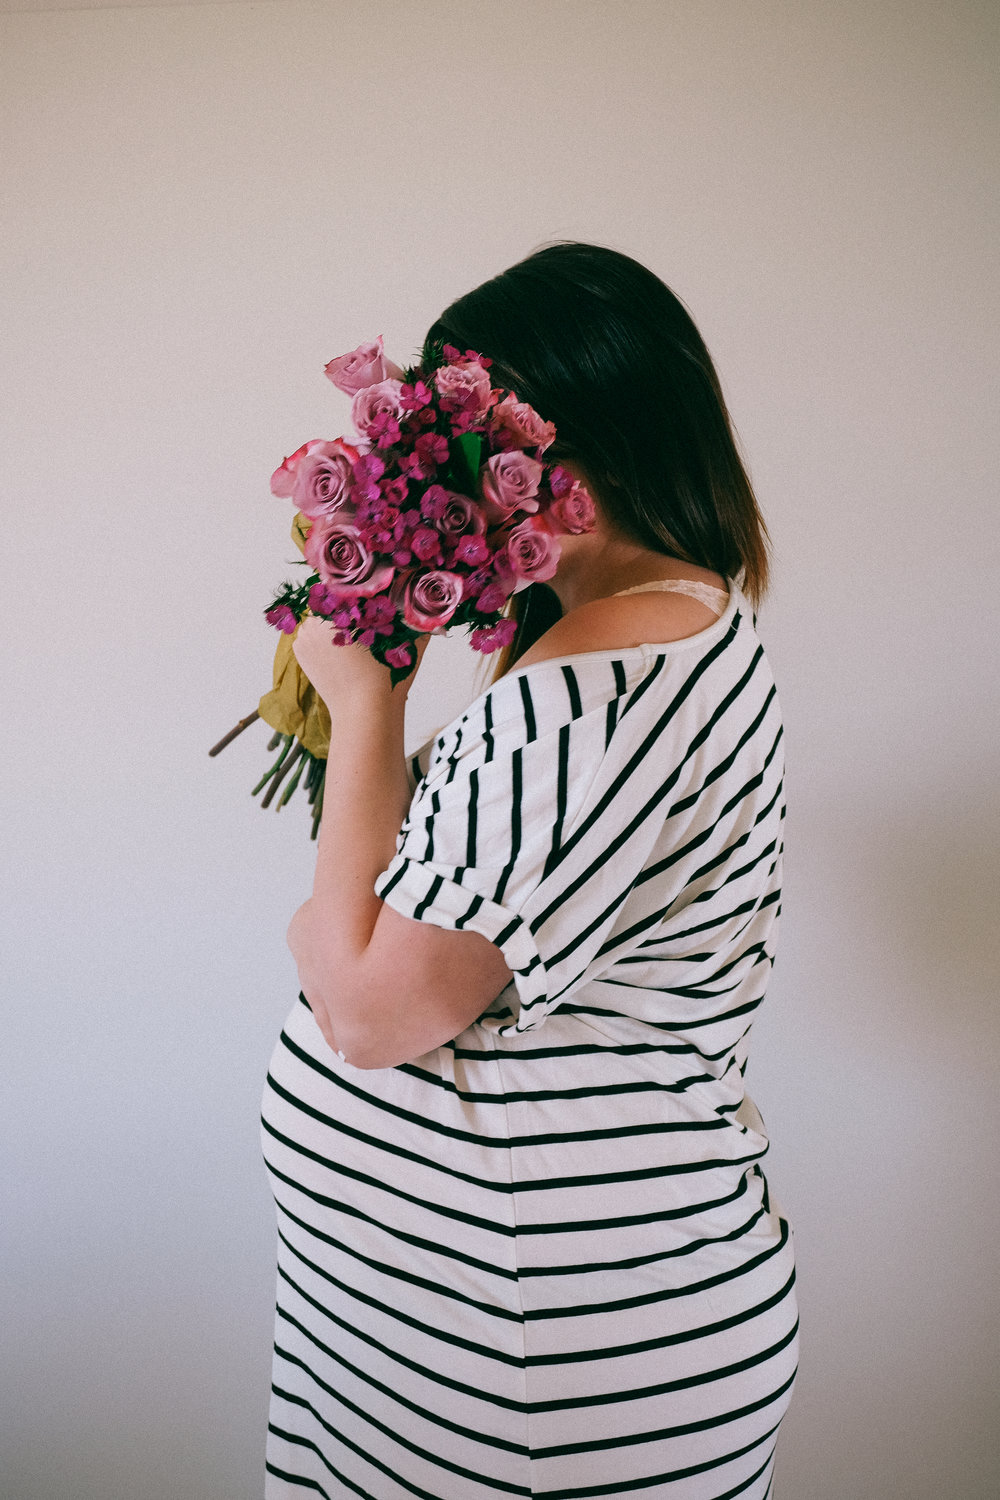 30 Week Bumpdate + Gender Reveal via www.chelceytate.com